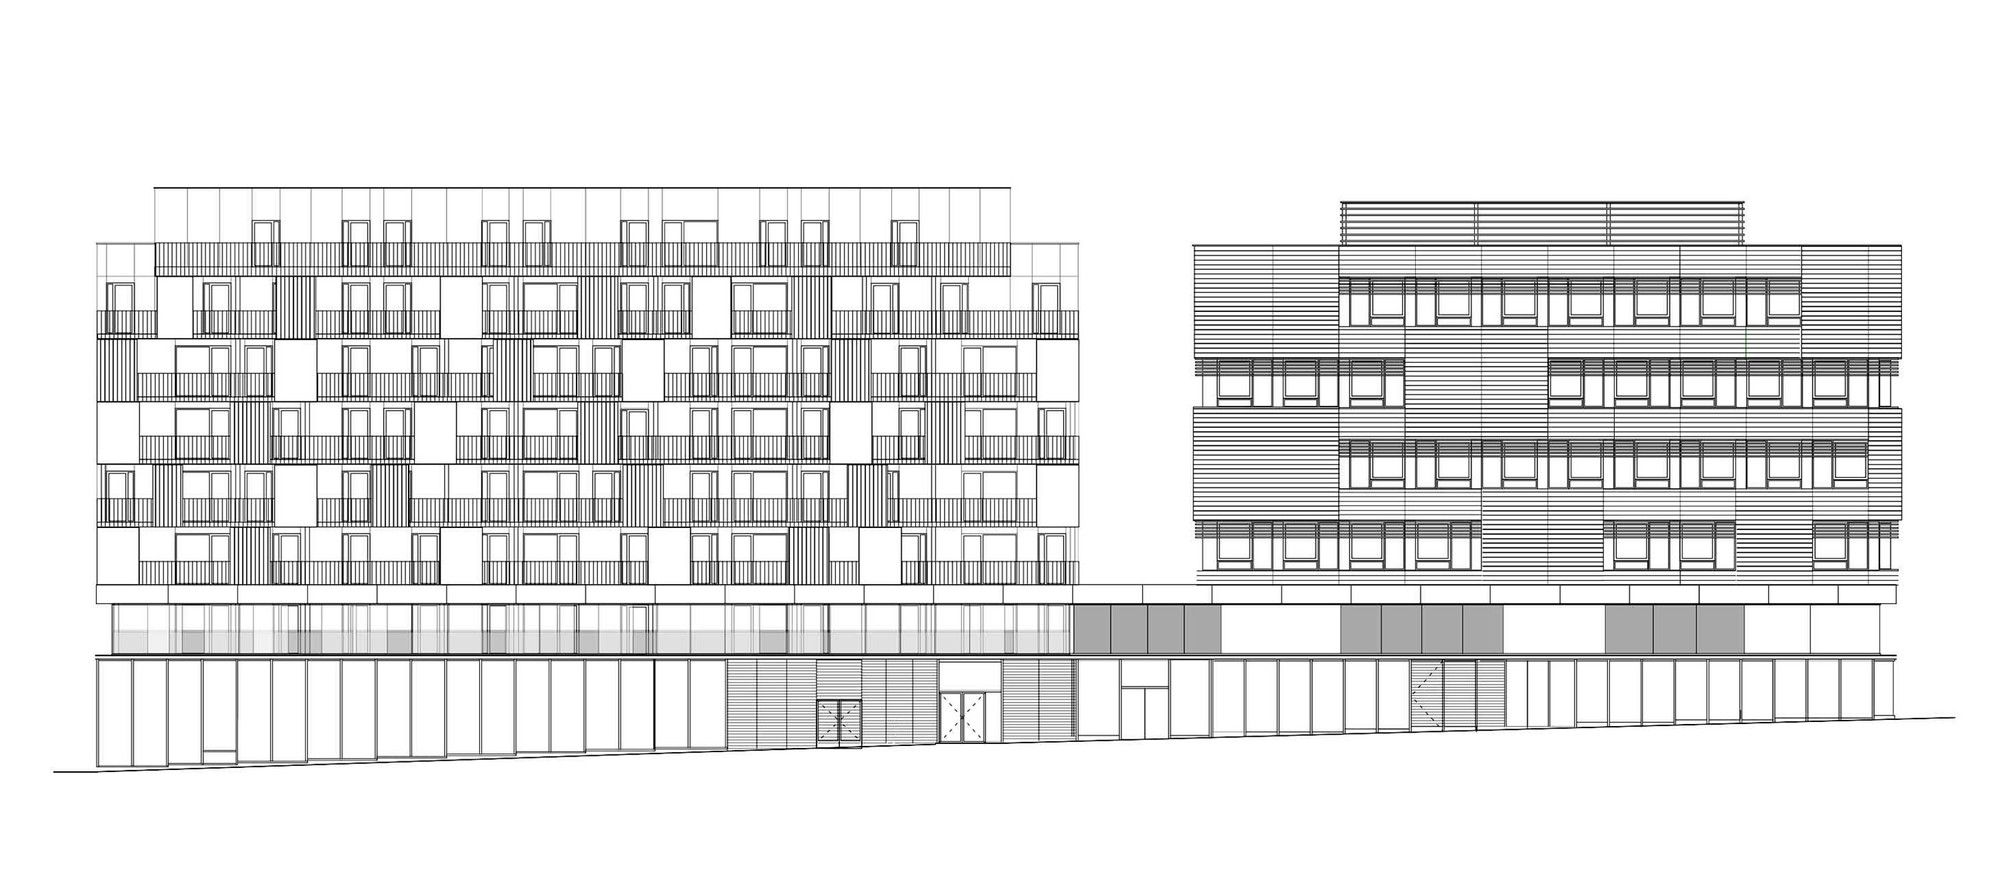 Gallery - Block 32 / Tectoniques Architects - 15